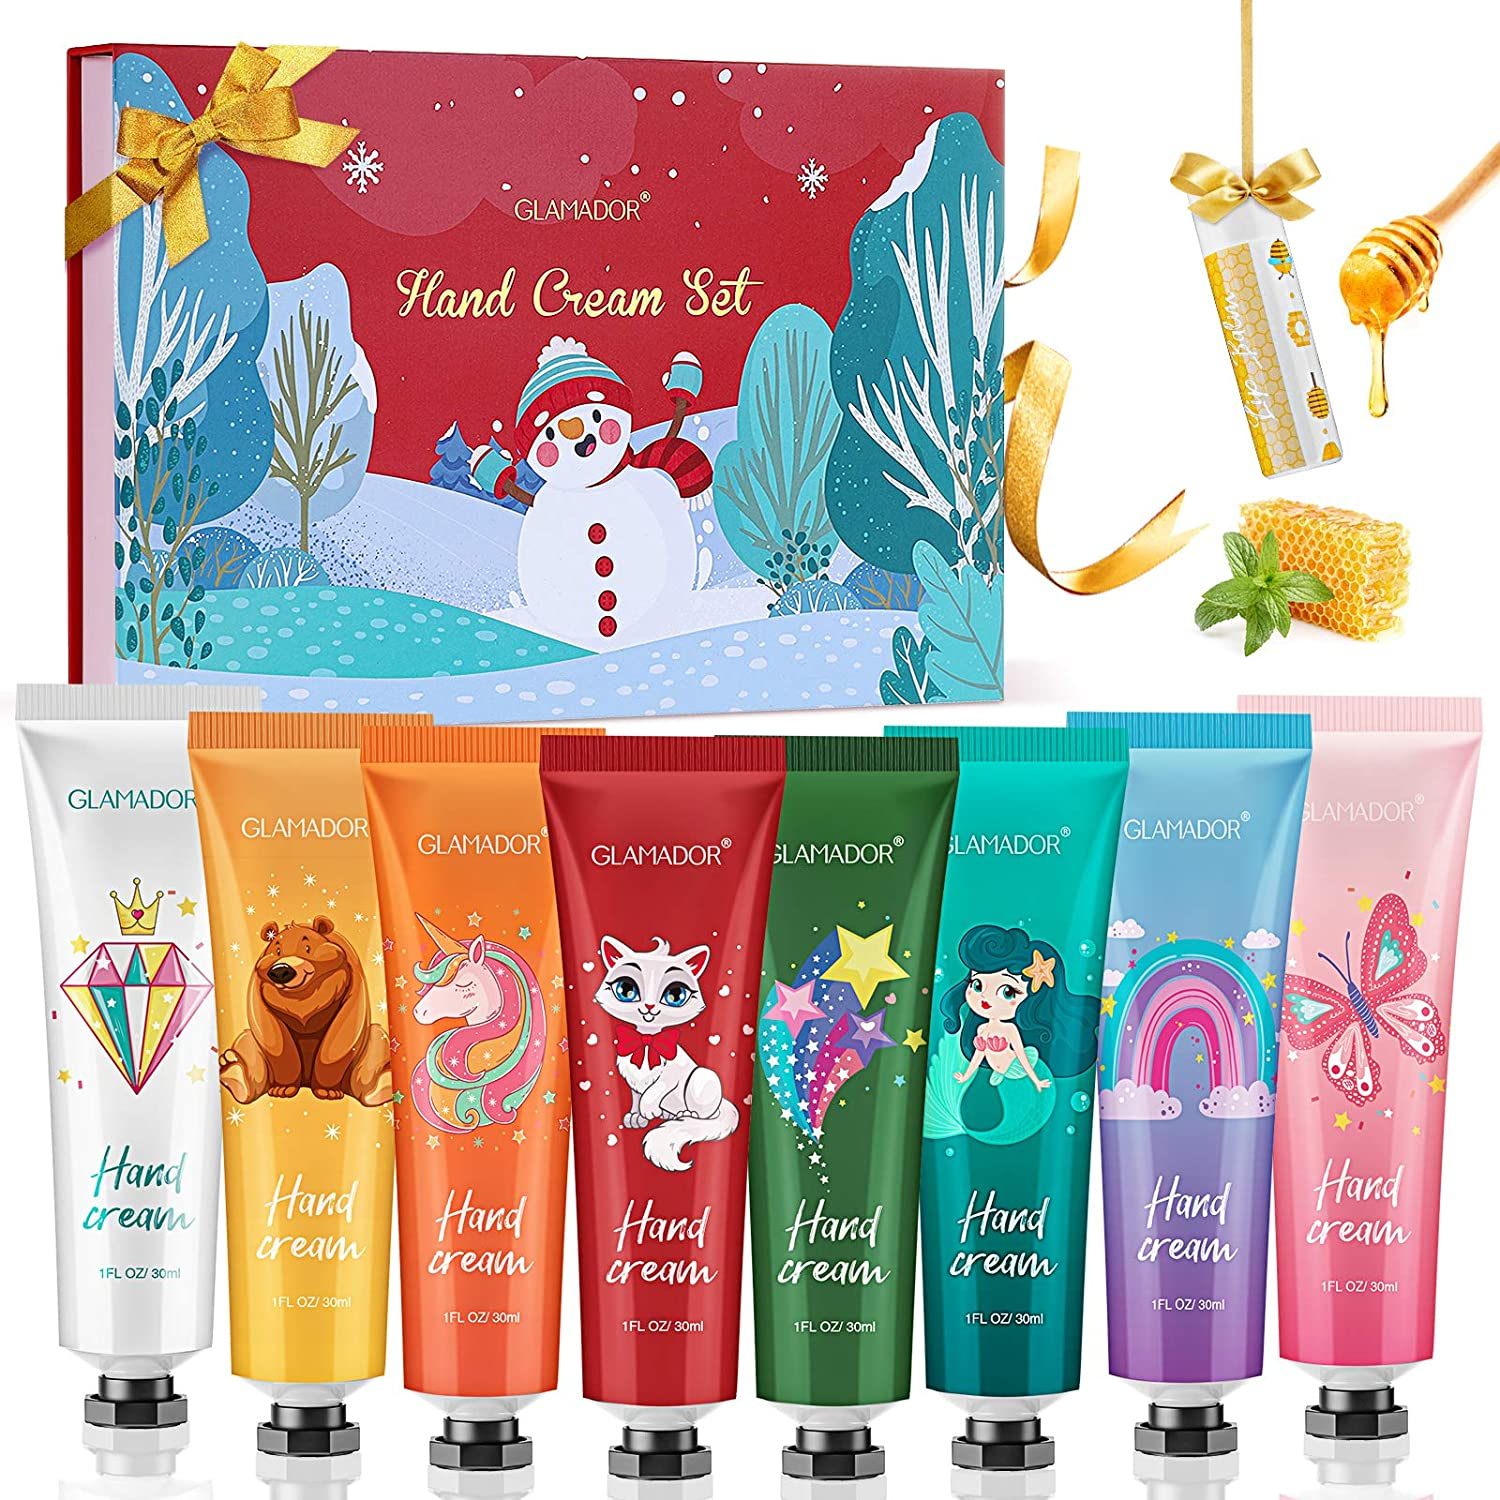 Hand Cream Gift Set, GLAMADOR 8x30ml Moisturizing Hand Lotion Travel Gift Kit for Dry Hands with Shea Butter & Vitamin E WAS £14.97 NOW £10.17 w/code GLAMADOR200 @ Amazon